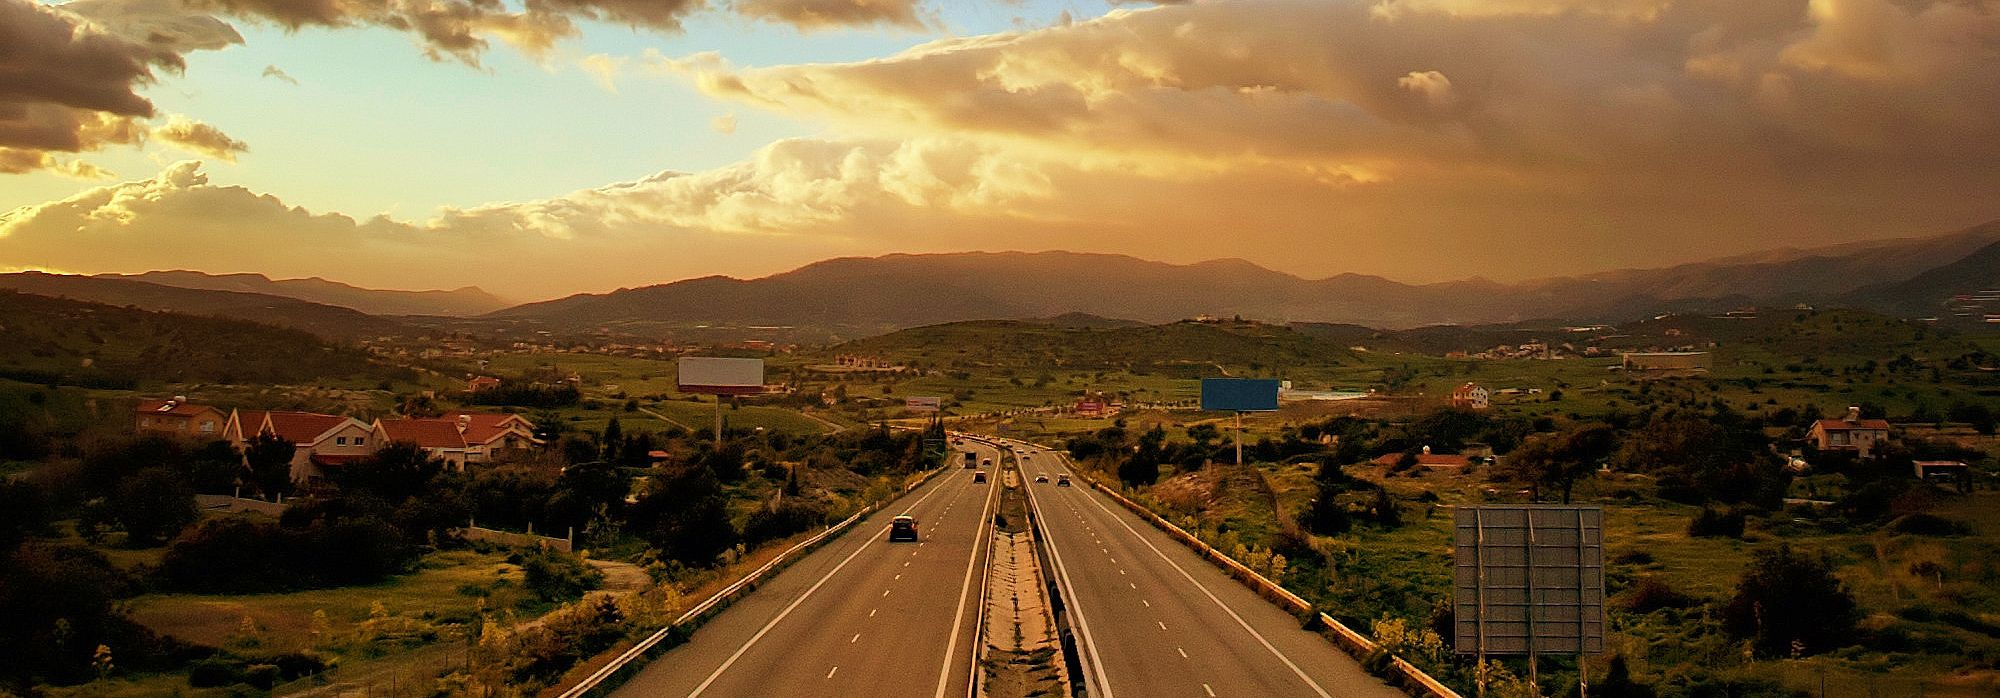 Highway with sunset view